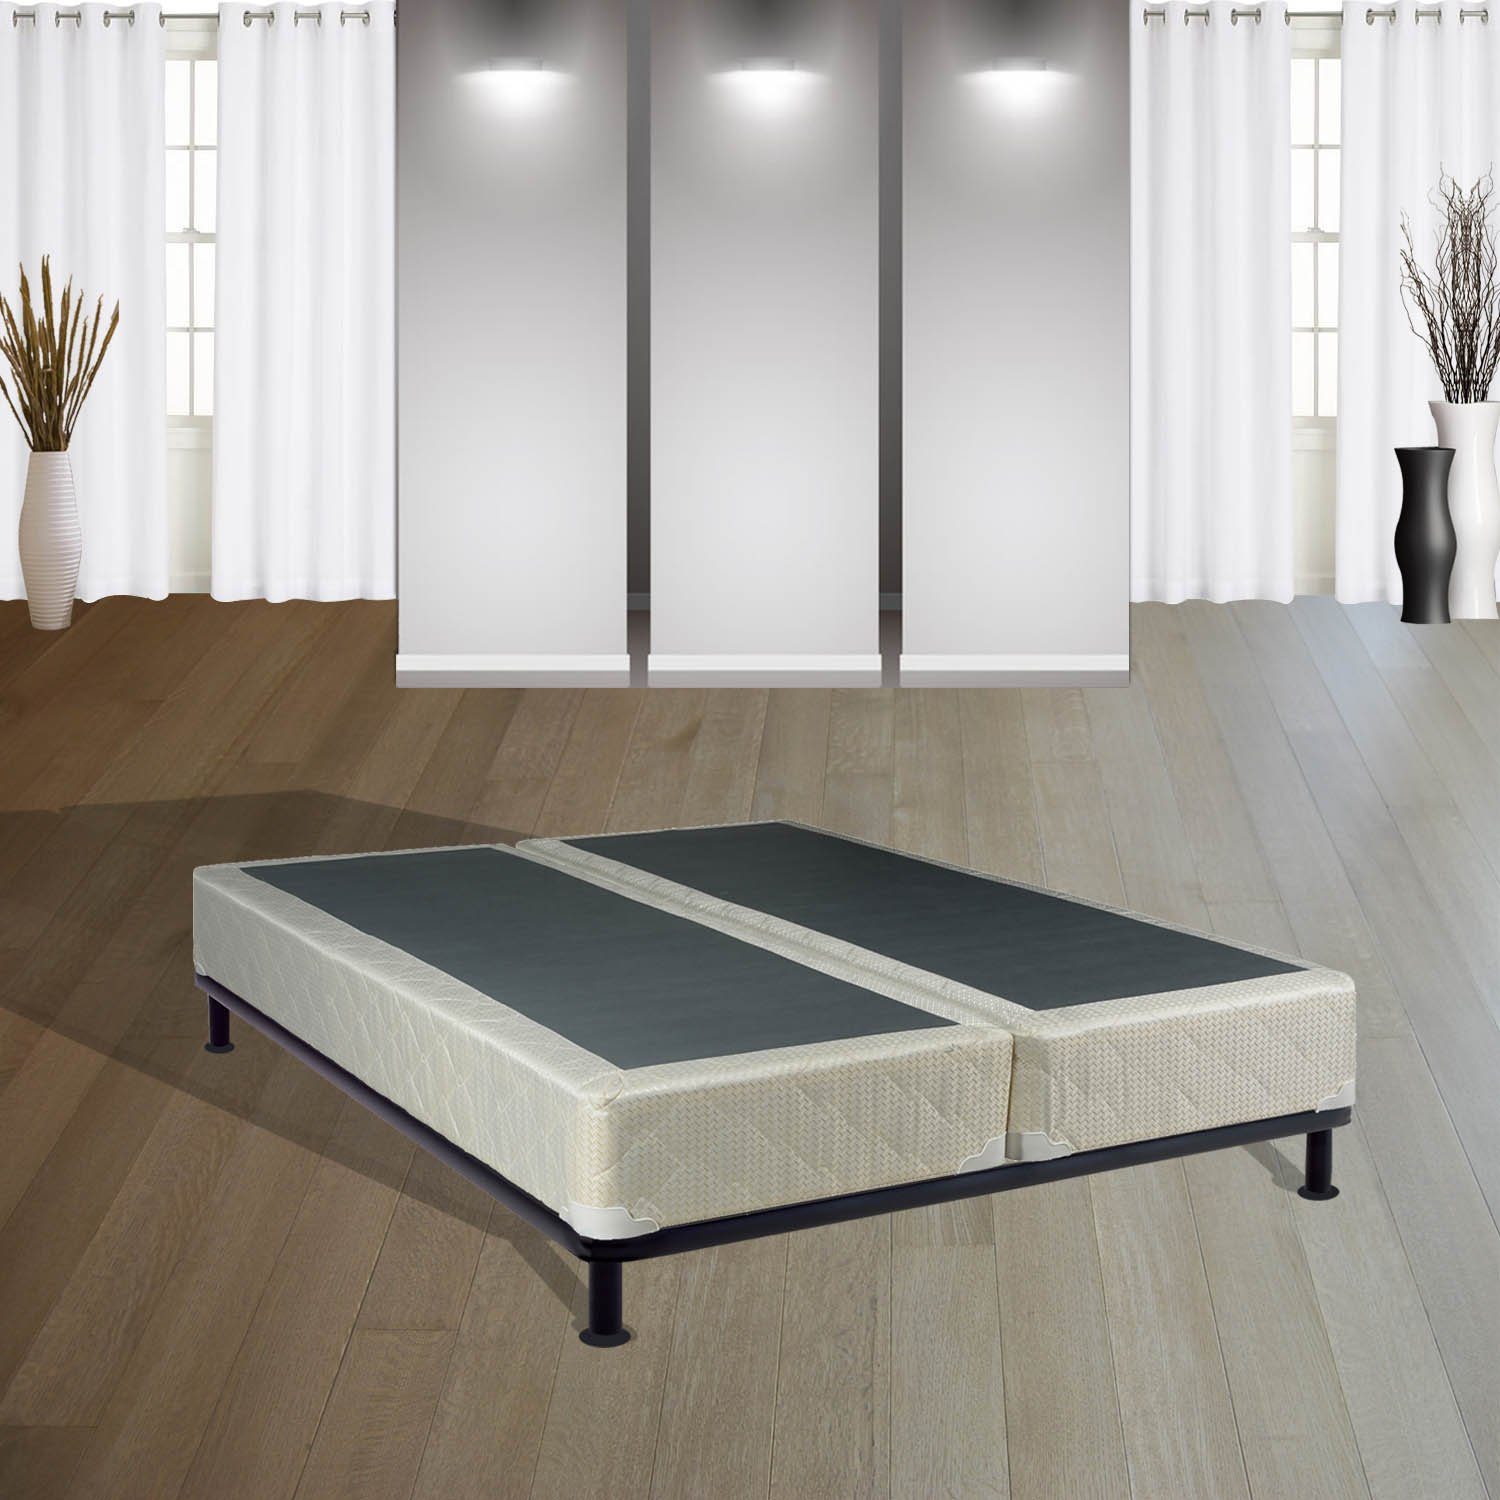 Mattress Solution, 4'' Assembled Box Spring for Mattress, Twin Size, Sun Collection